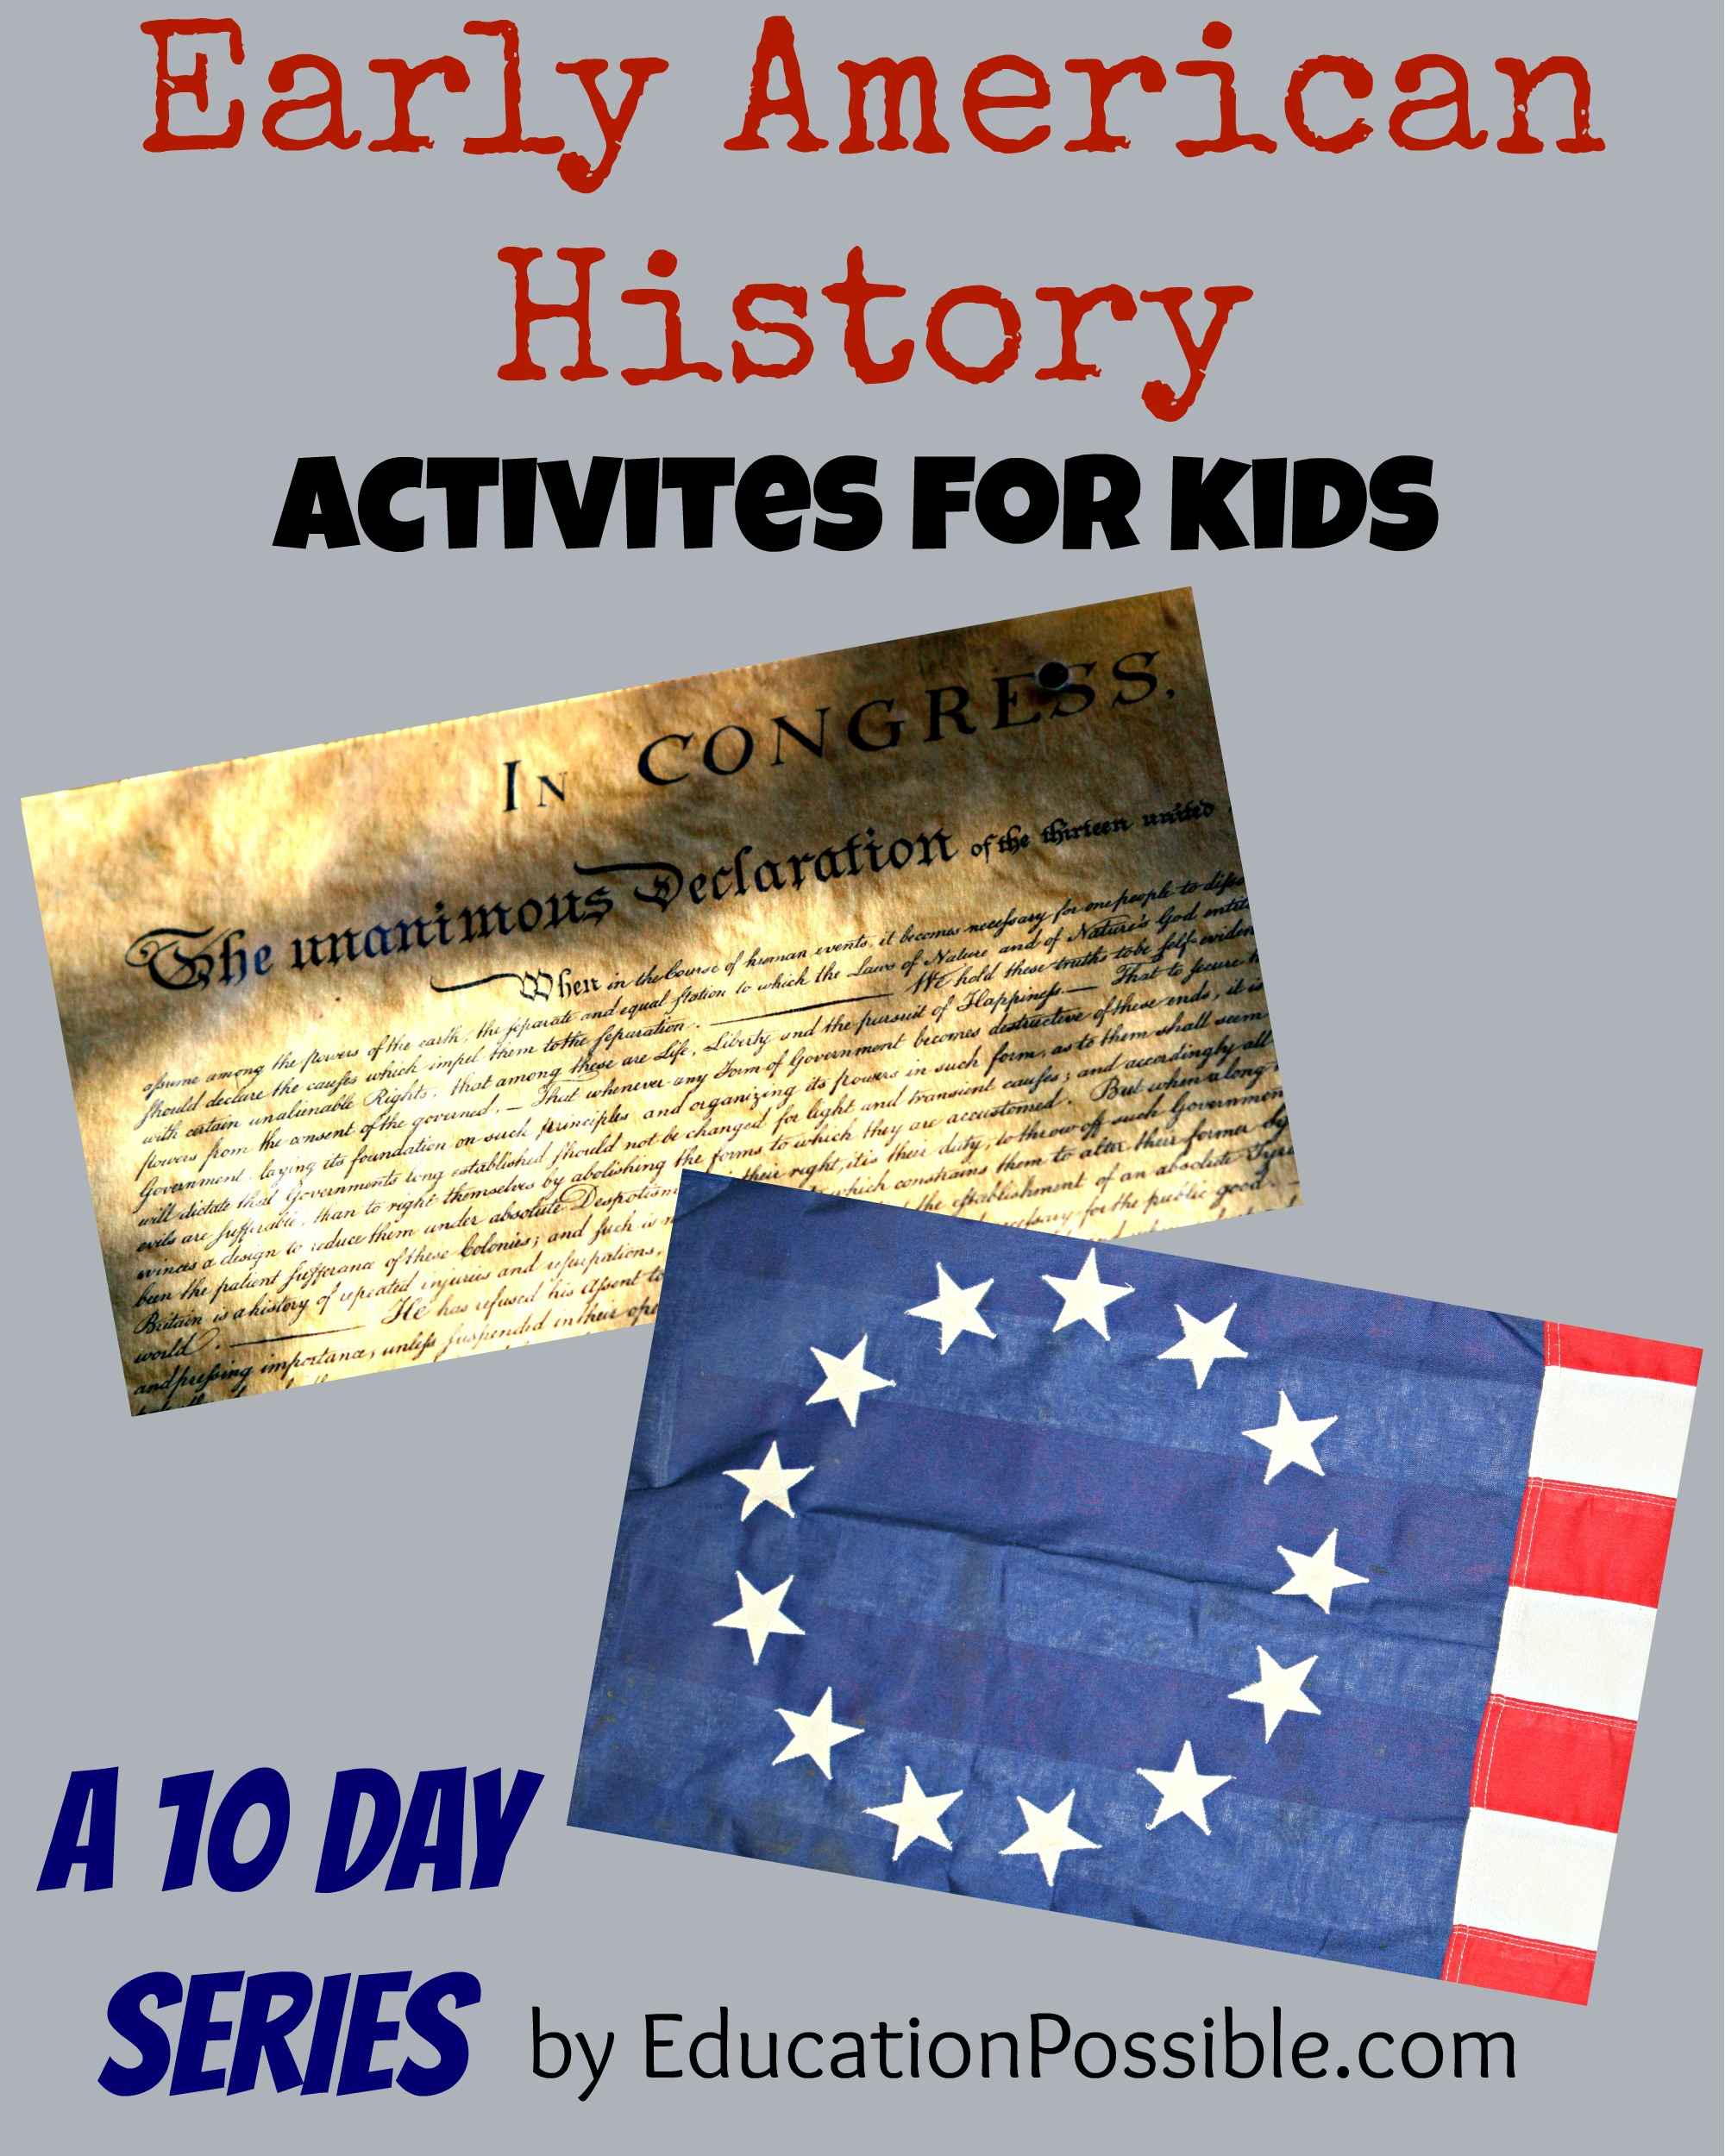 Early American History Activities For Kids